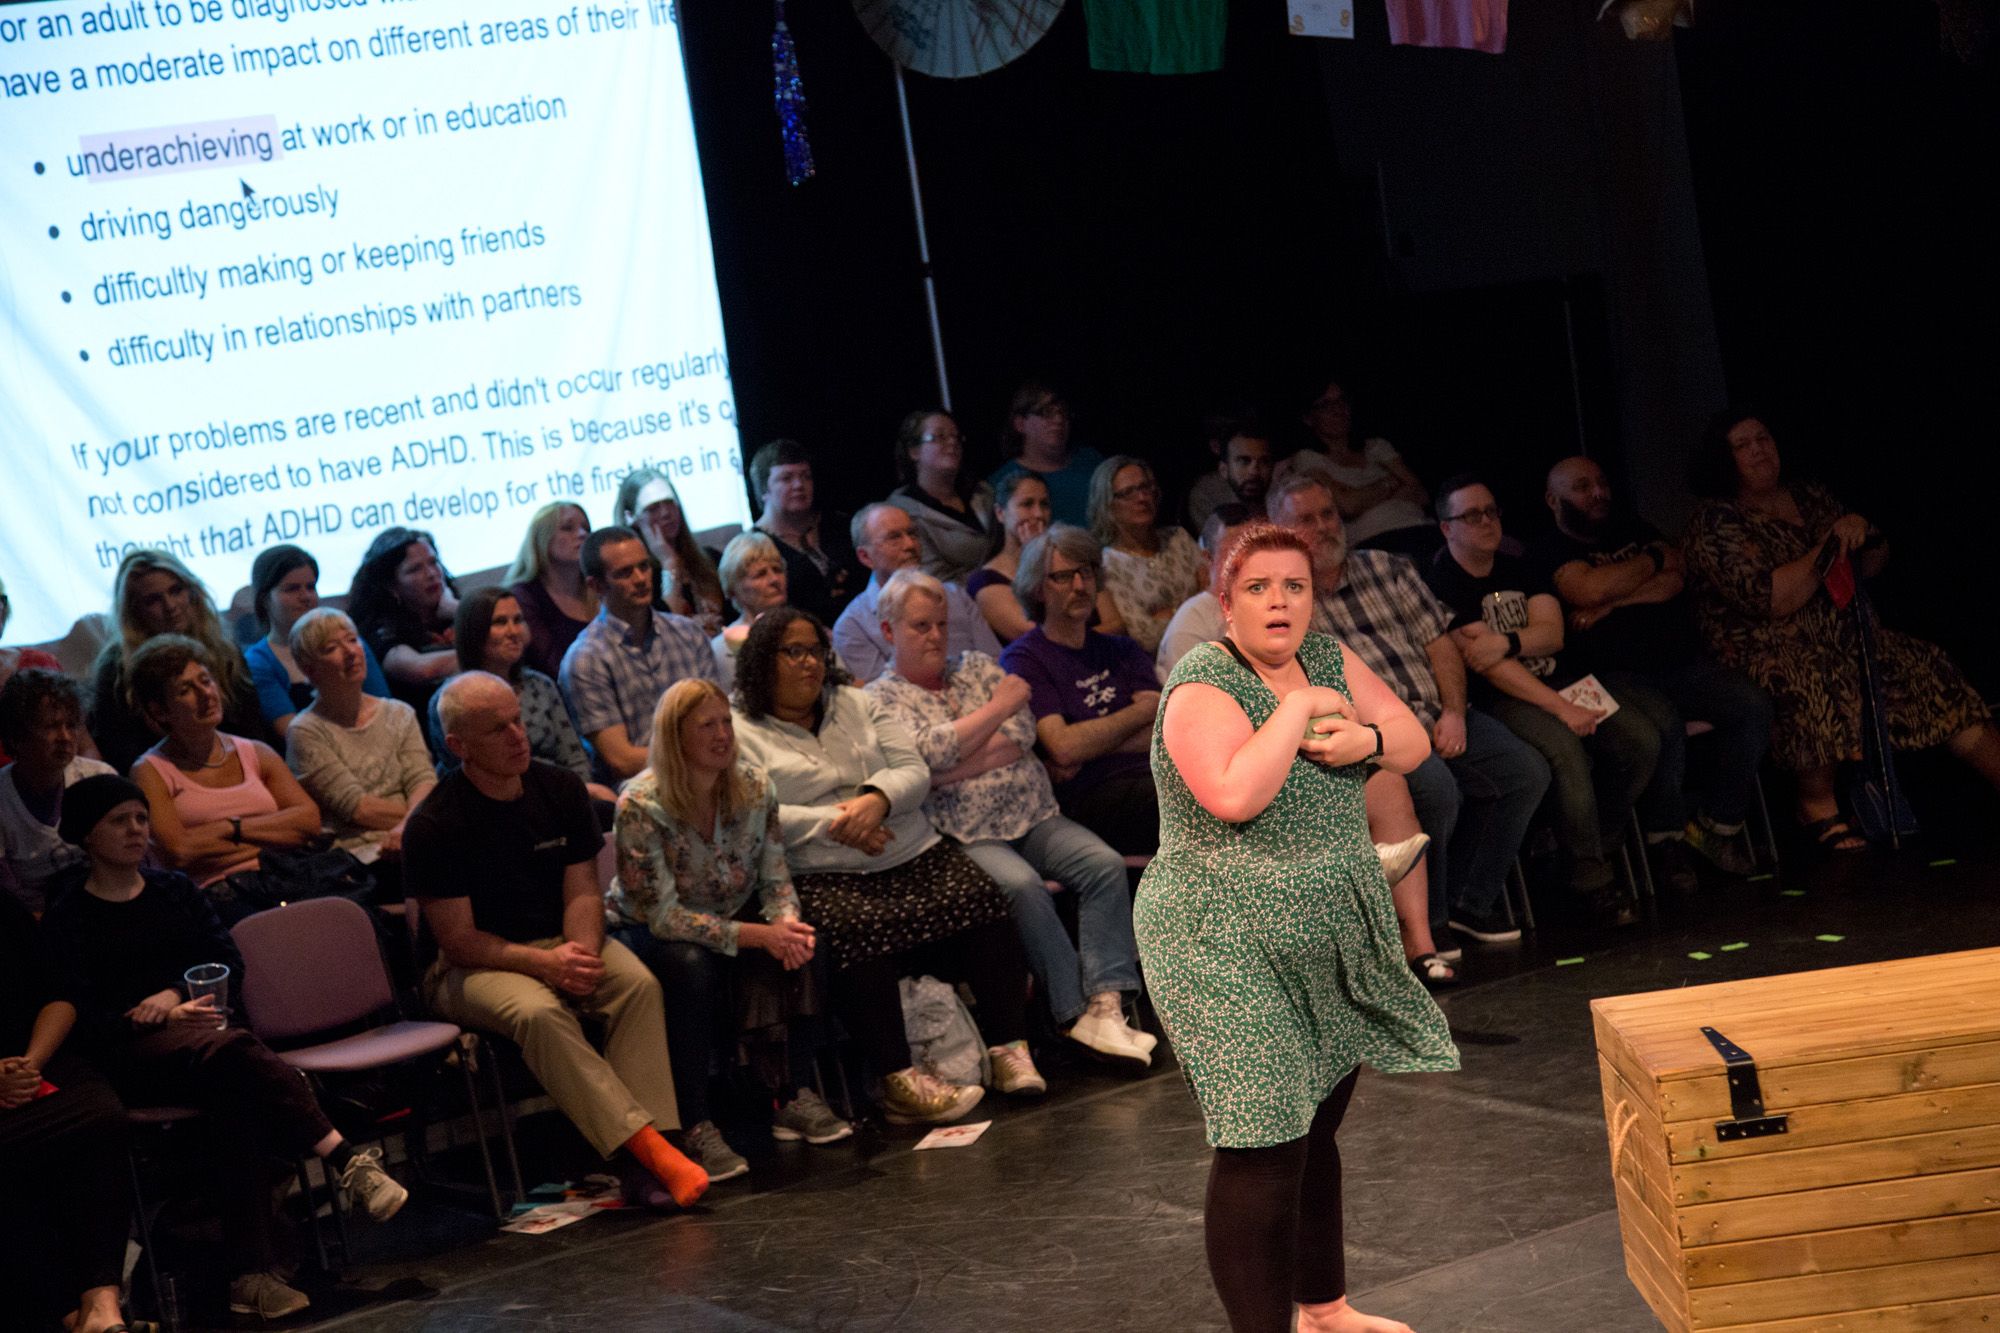 Art with Heart's Declaration. Photograph by Sam Riley.